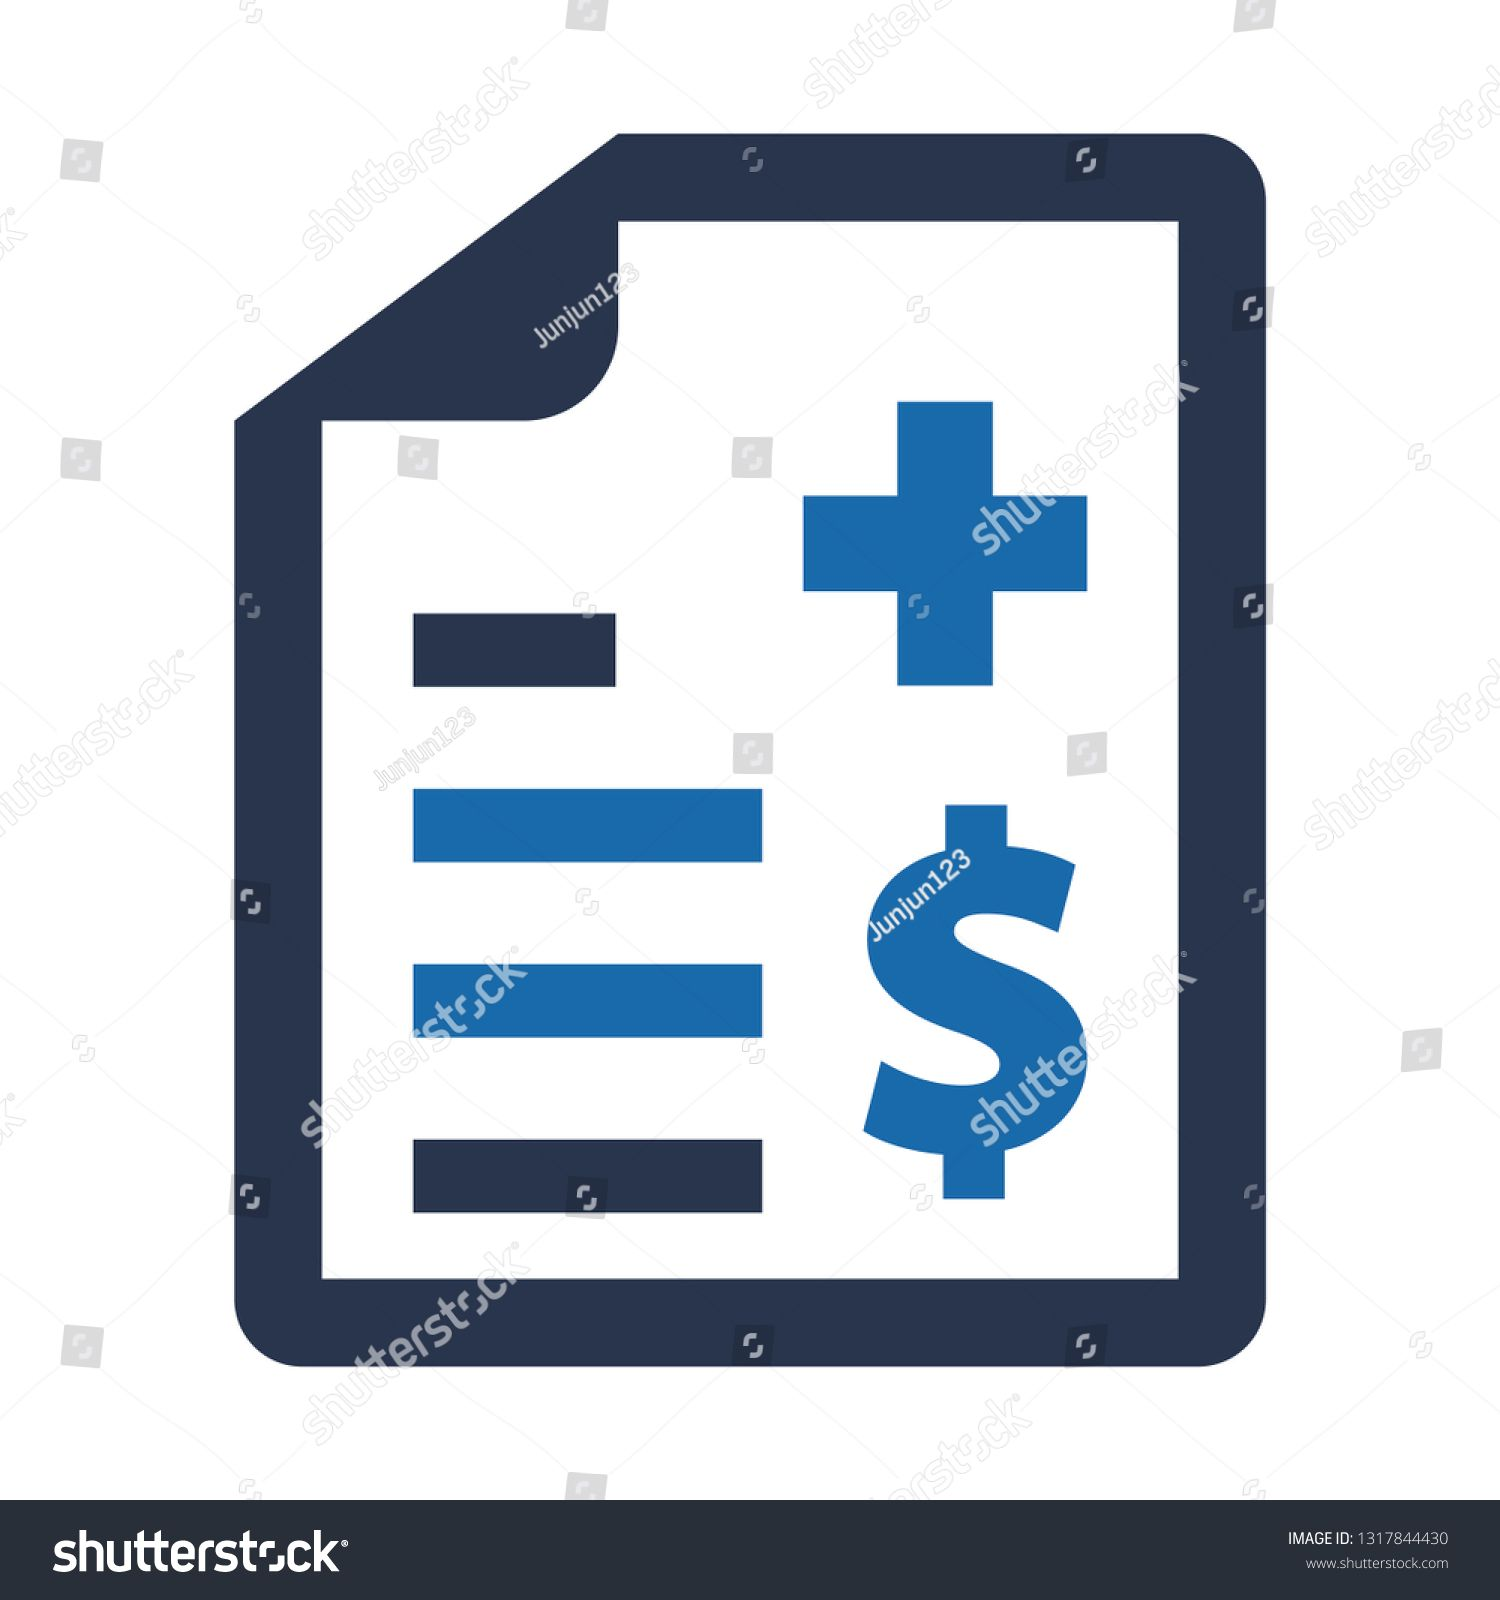 Health Insurance Icon Insurance Policy Icon Life Insurance Policy Icon Medical Bill Icon Medica Health Insurance Best Health Insurance Life Insurance Policy